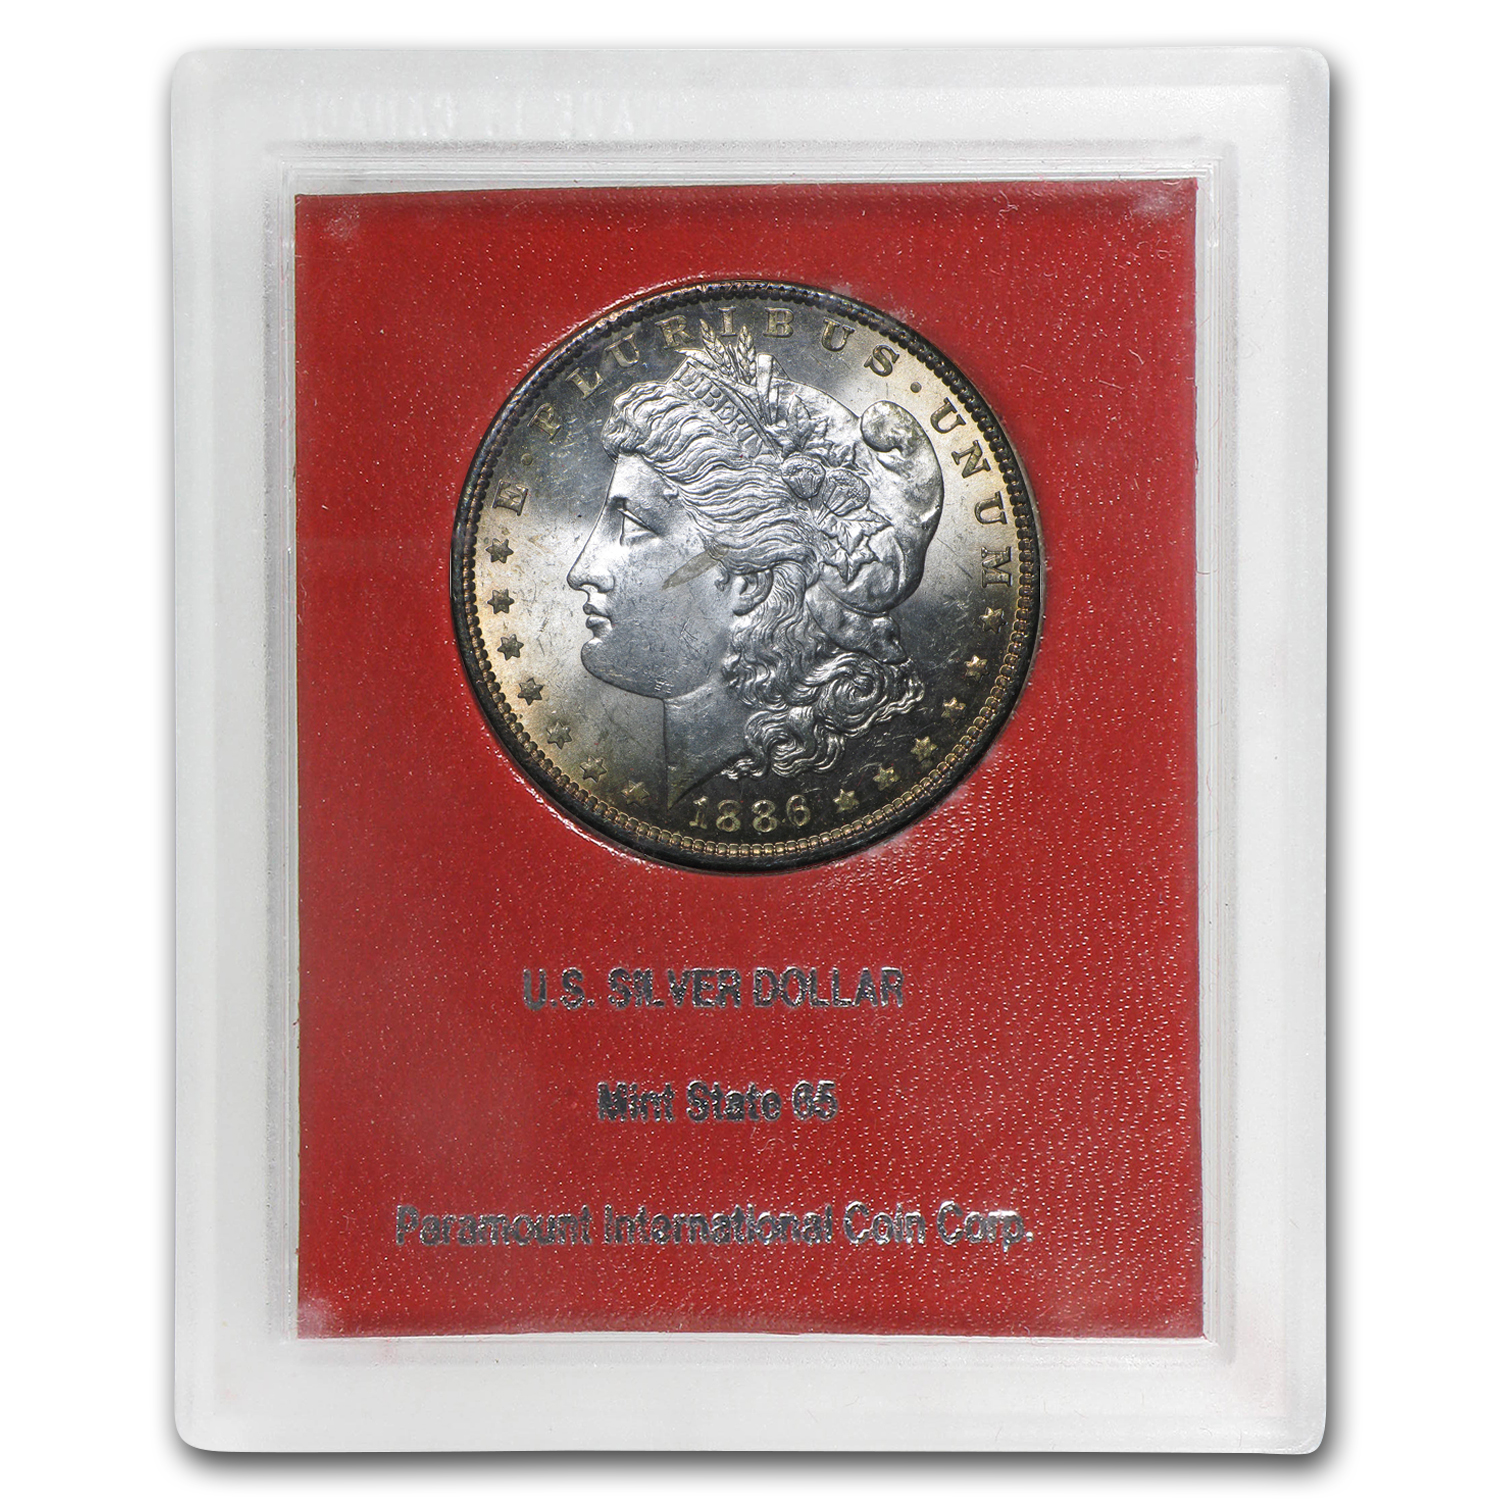 1886 Morgan Dollar MS-60 (Paramount International Coin Co.)